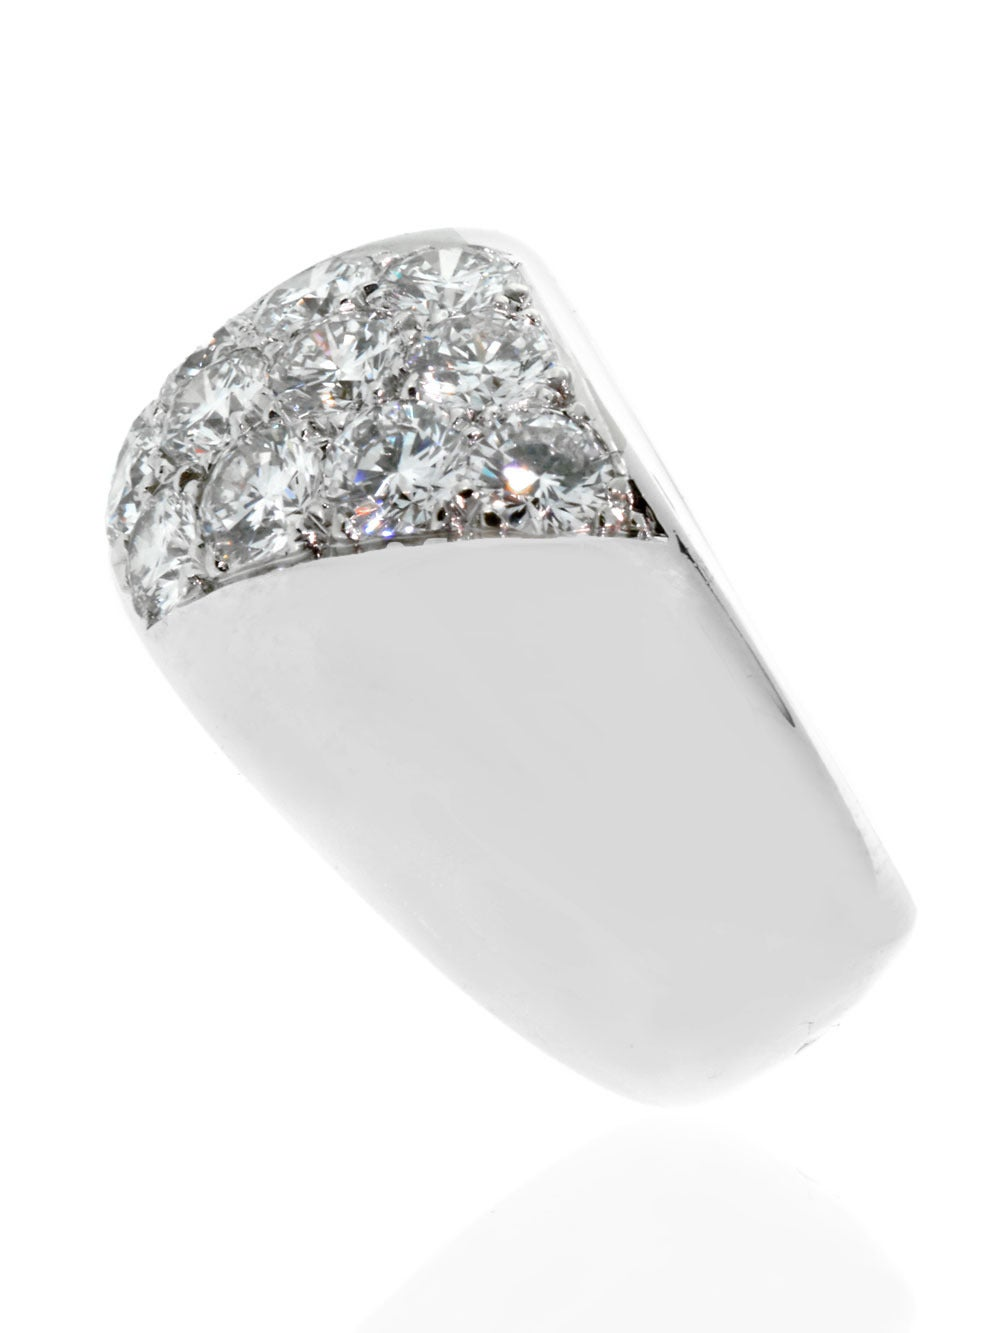 A marvelous authentic Cartier immaculately set with the finest Carter round brilliant cut diamonds in shimmering 18k white gold.